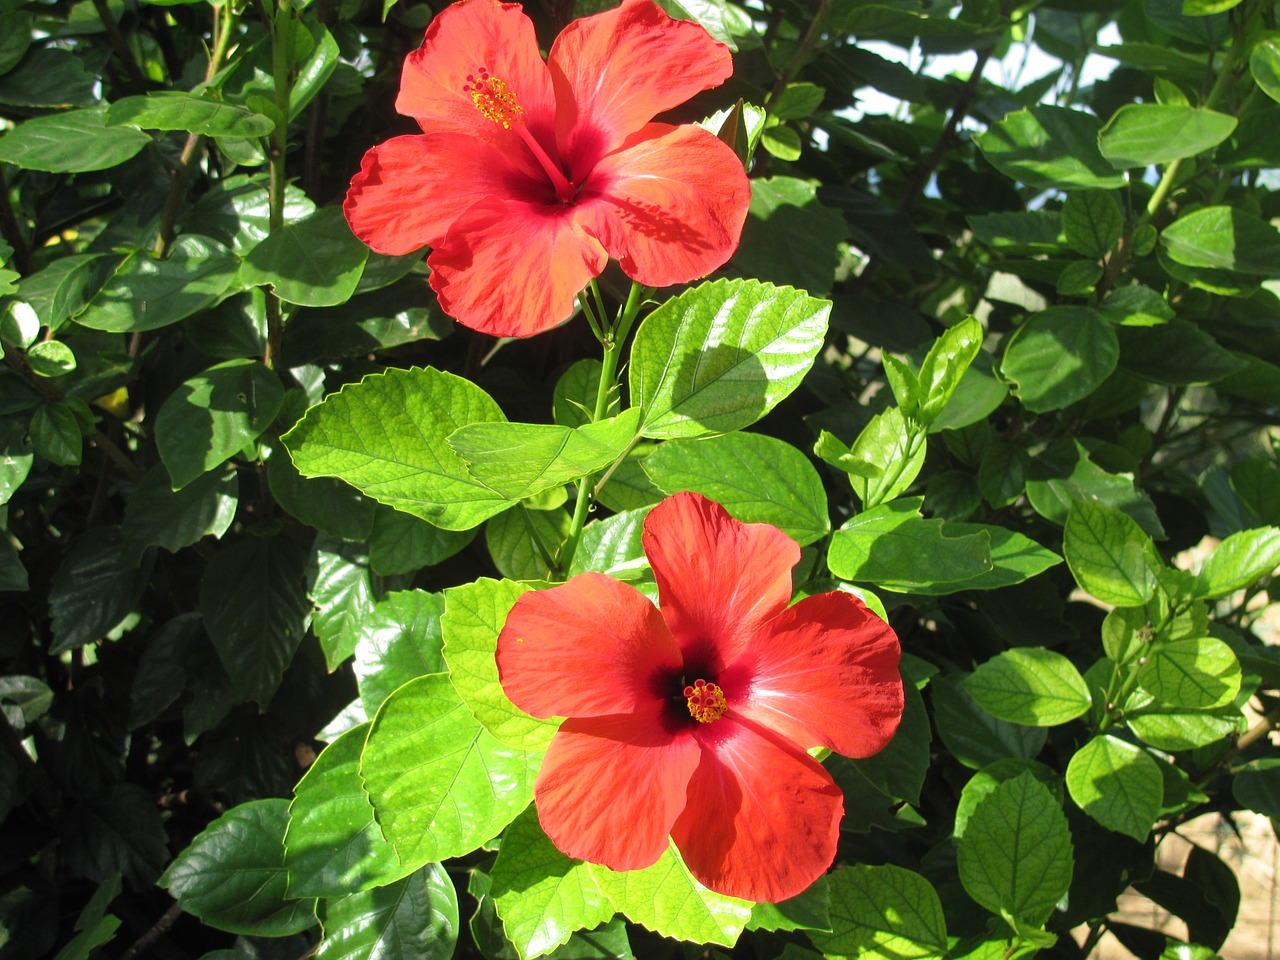 Hibiscusflowertreeflowering treered free photo from needpix hibiscus flower tree izmirmasajfo